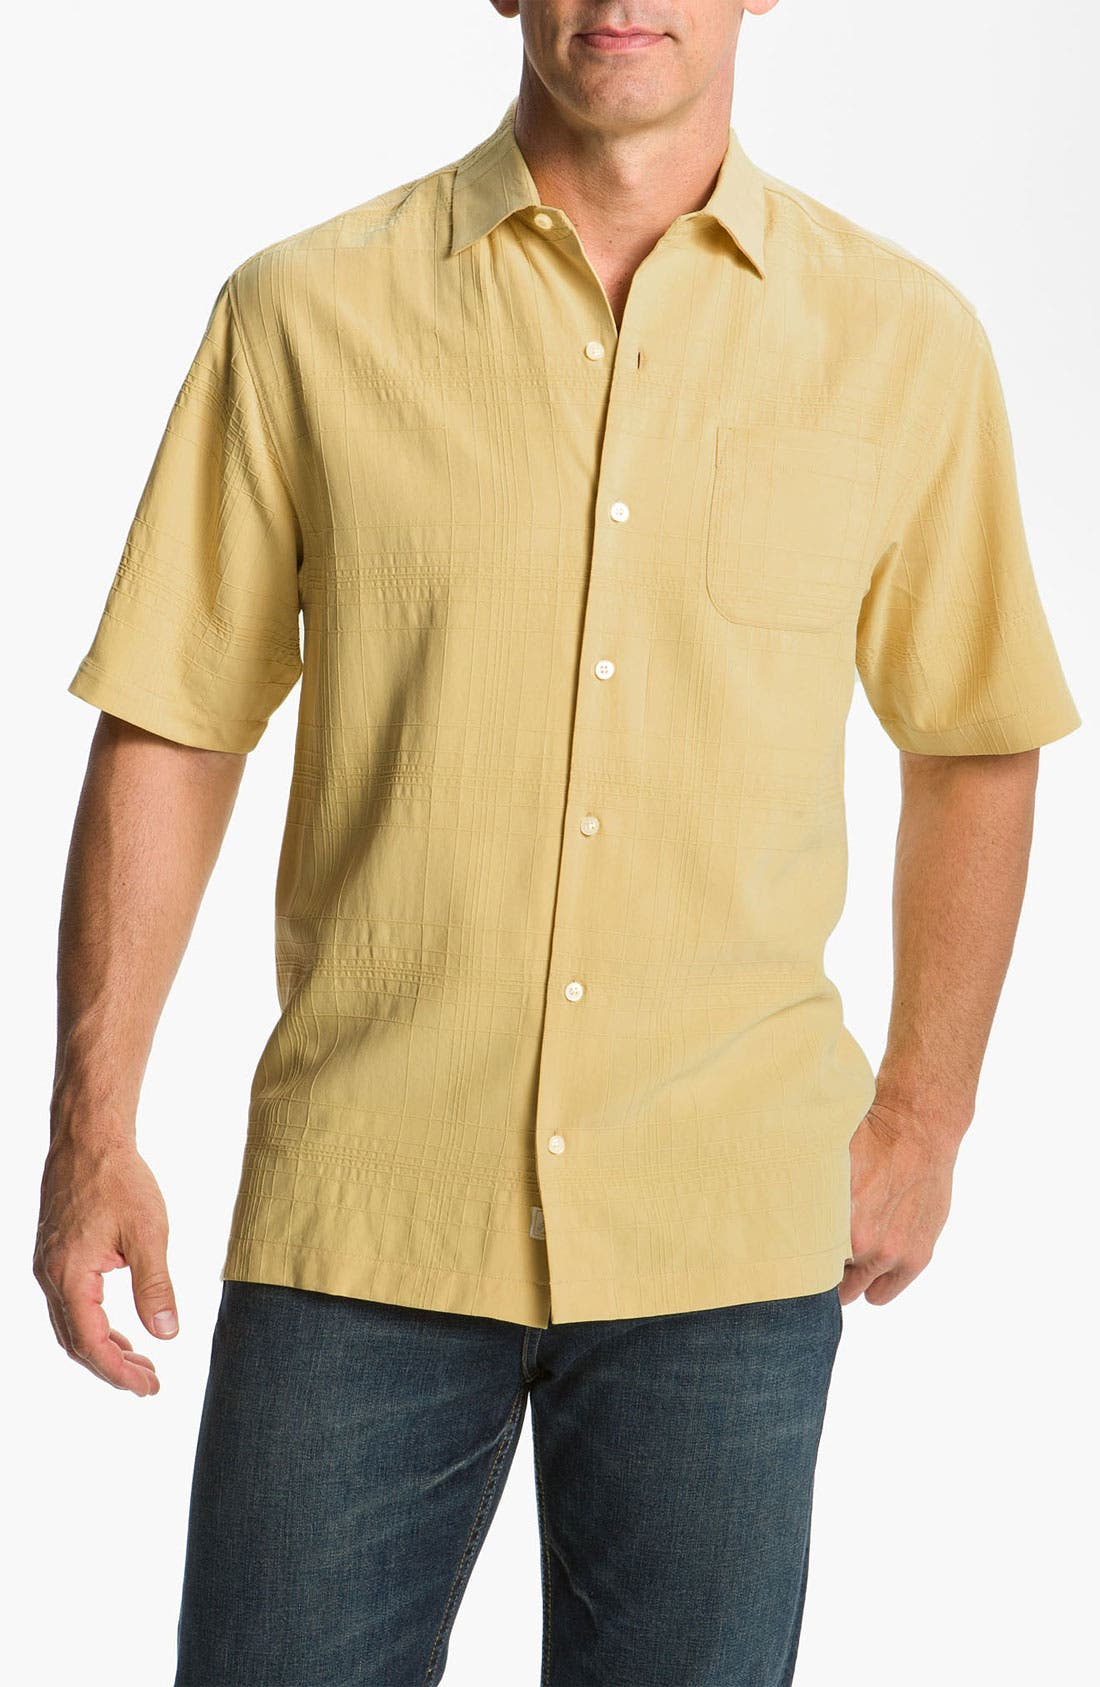 Alternate Image 1 Selected - Tommy Bahama 'Skyscraper' Silk Campshirt